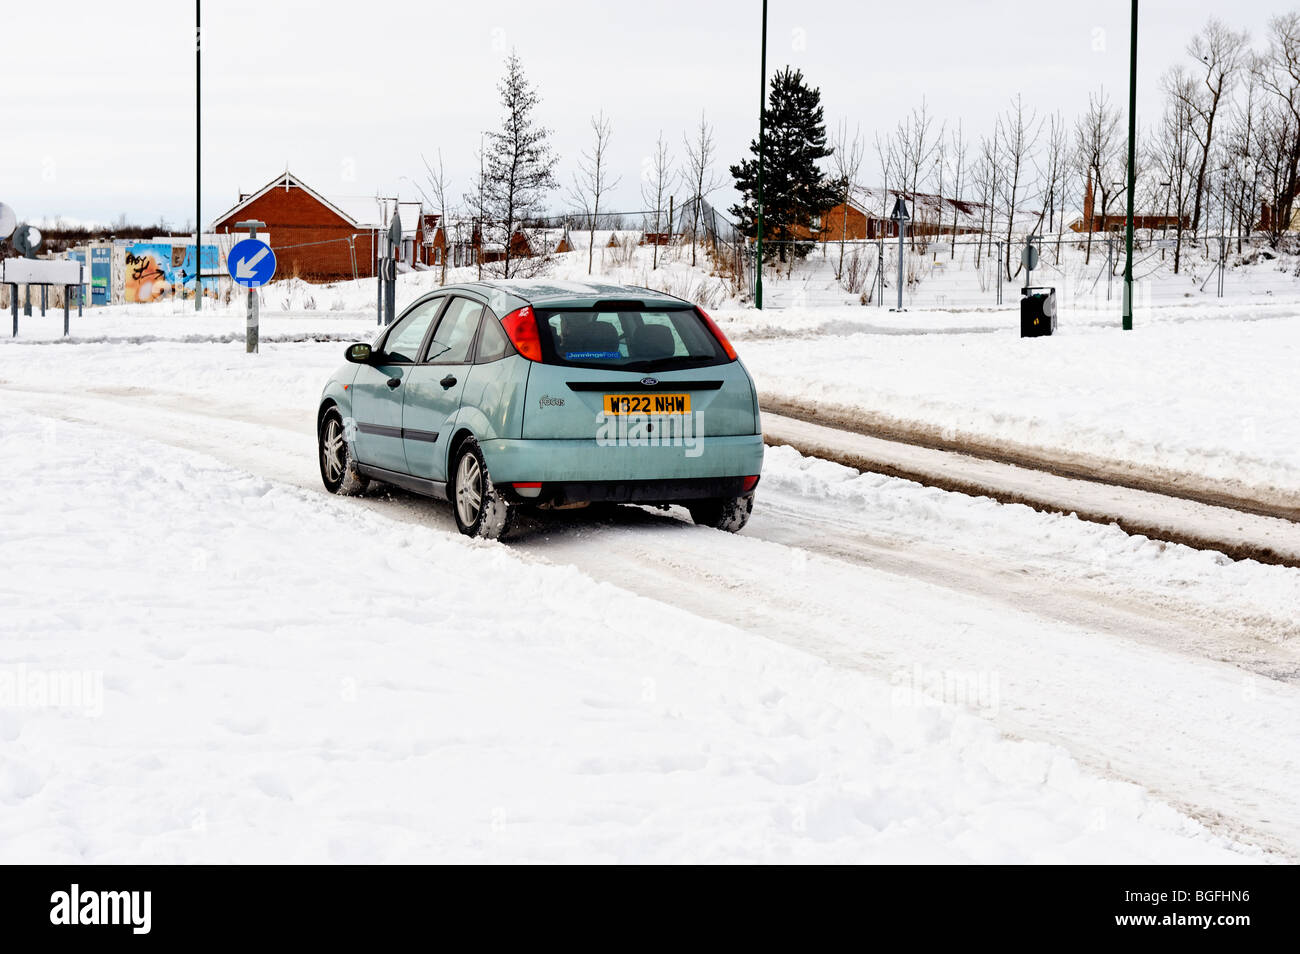 Winter motoring car driving in snow on an urban road - Stock Image